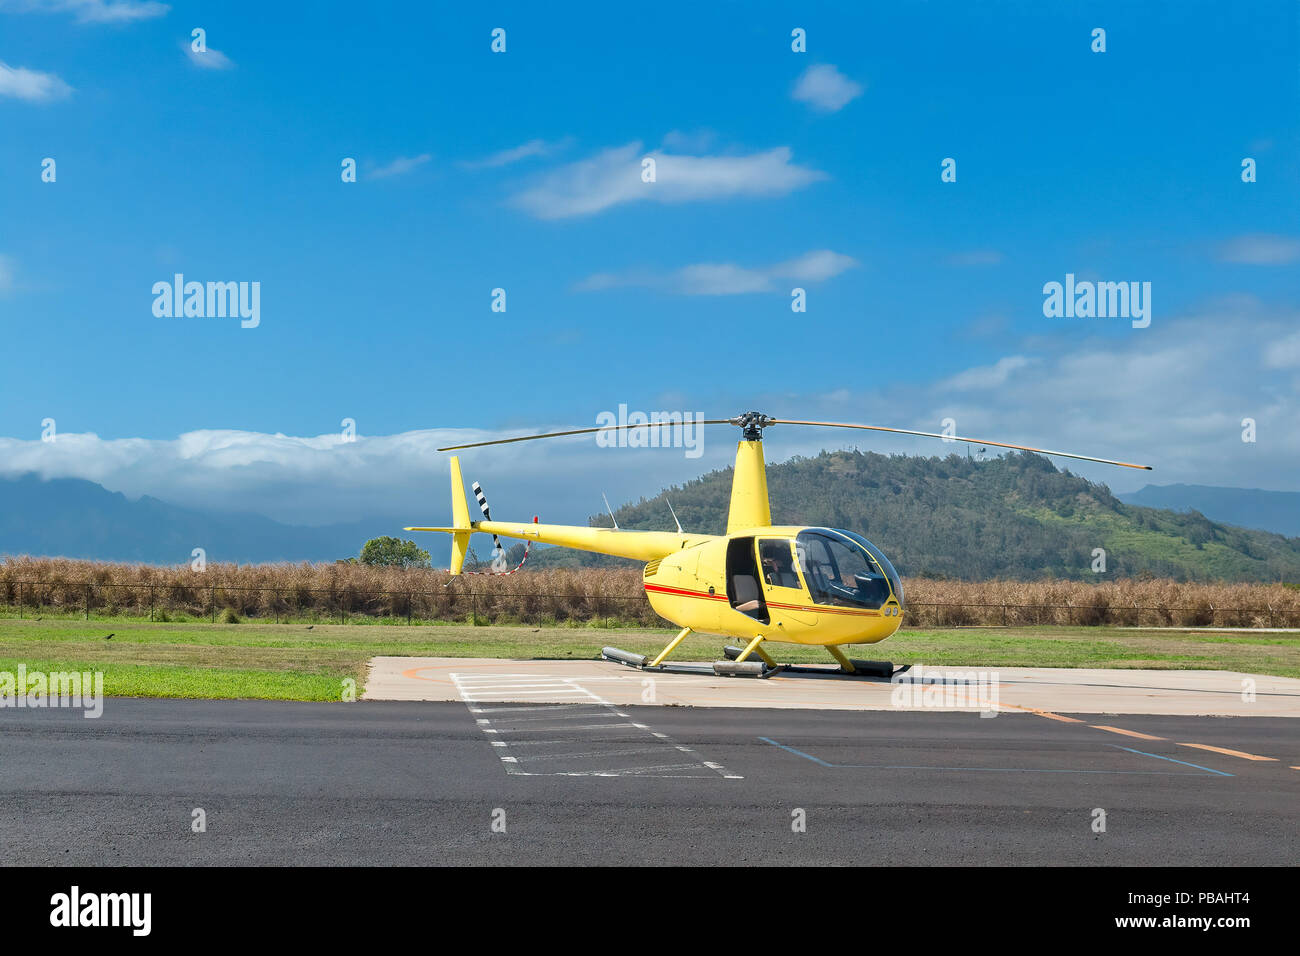 Yellow Sightseeing Helicopter Parked in a deserted meadow in a Hawaiian Island - Stock Image